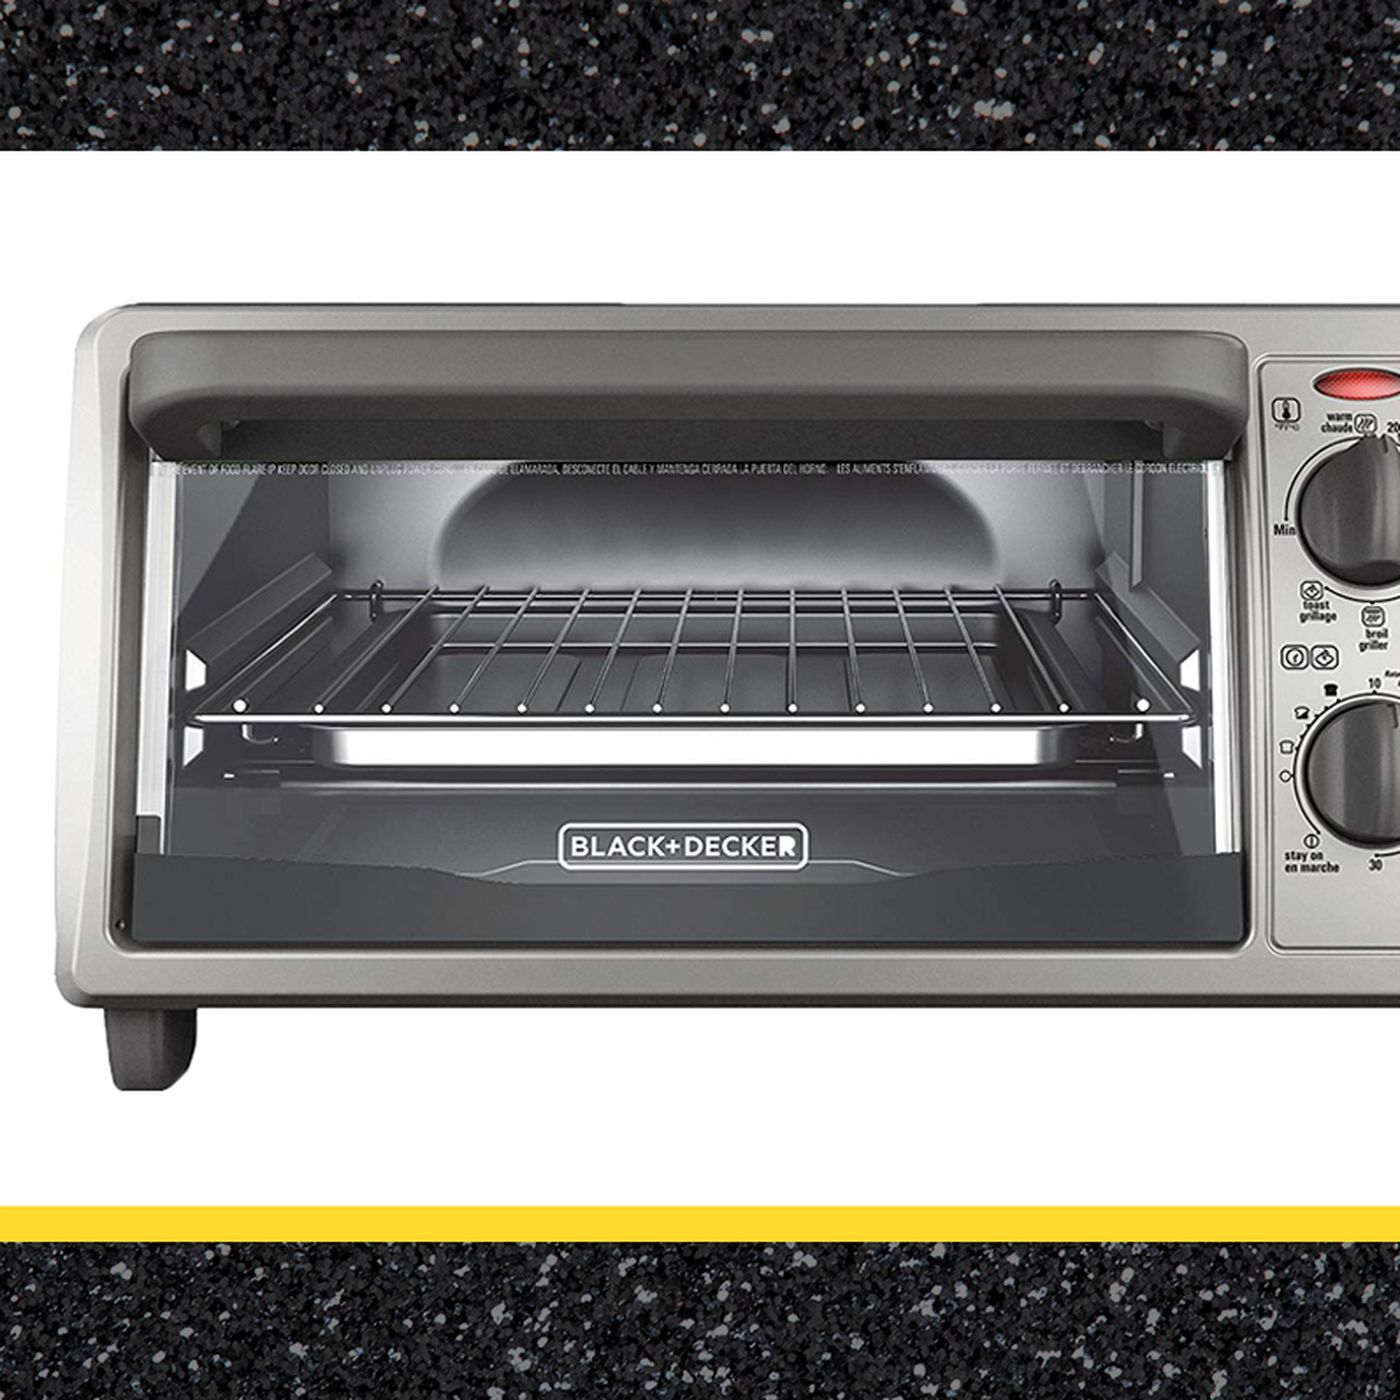 Black Friday Toaster Oven | All About Image HD